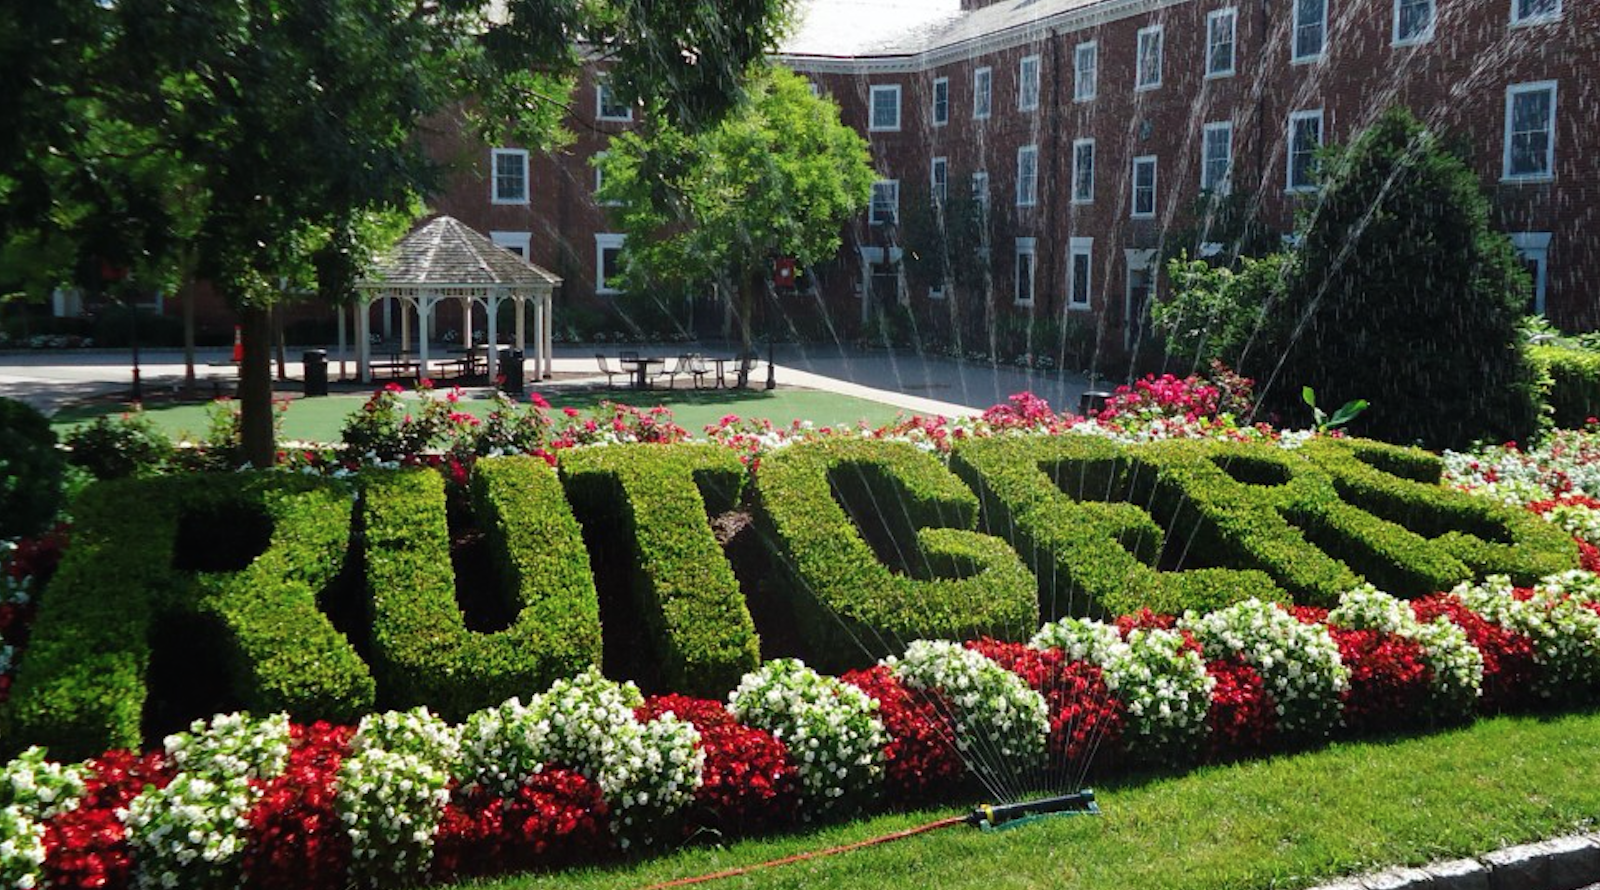 Rutgers Announces Initiative To Launch Center To Support Adults With Autism